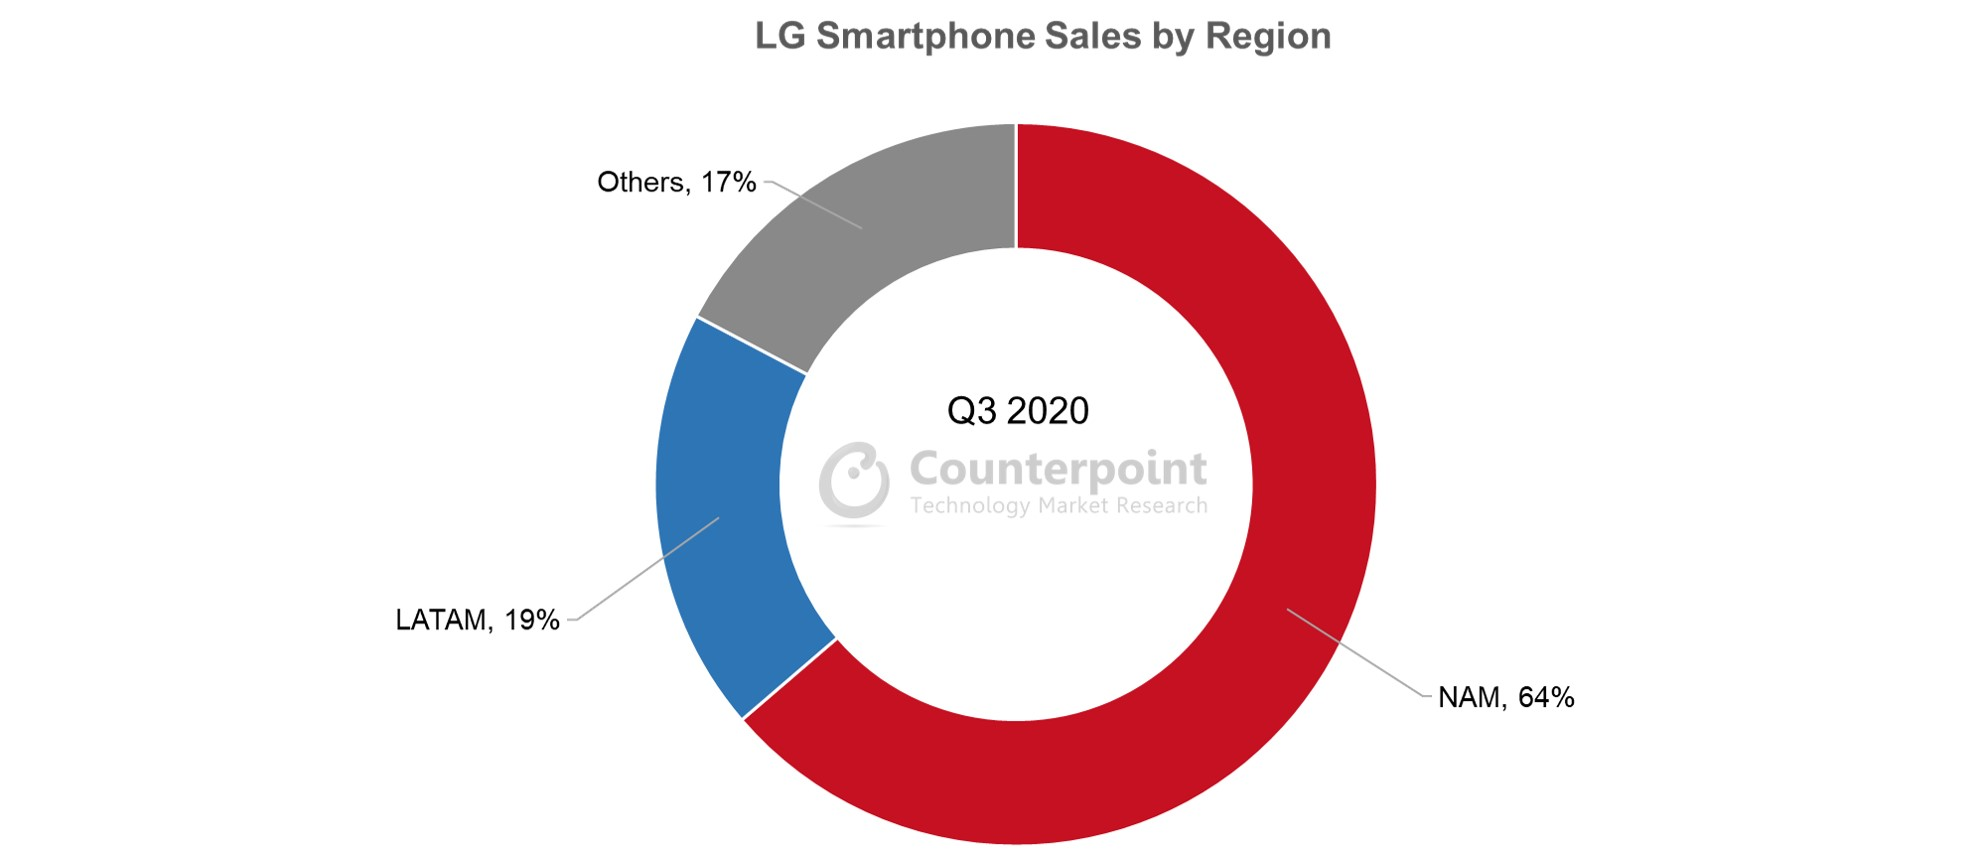 Counterpoint Research LG Smartphone Sales by Region